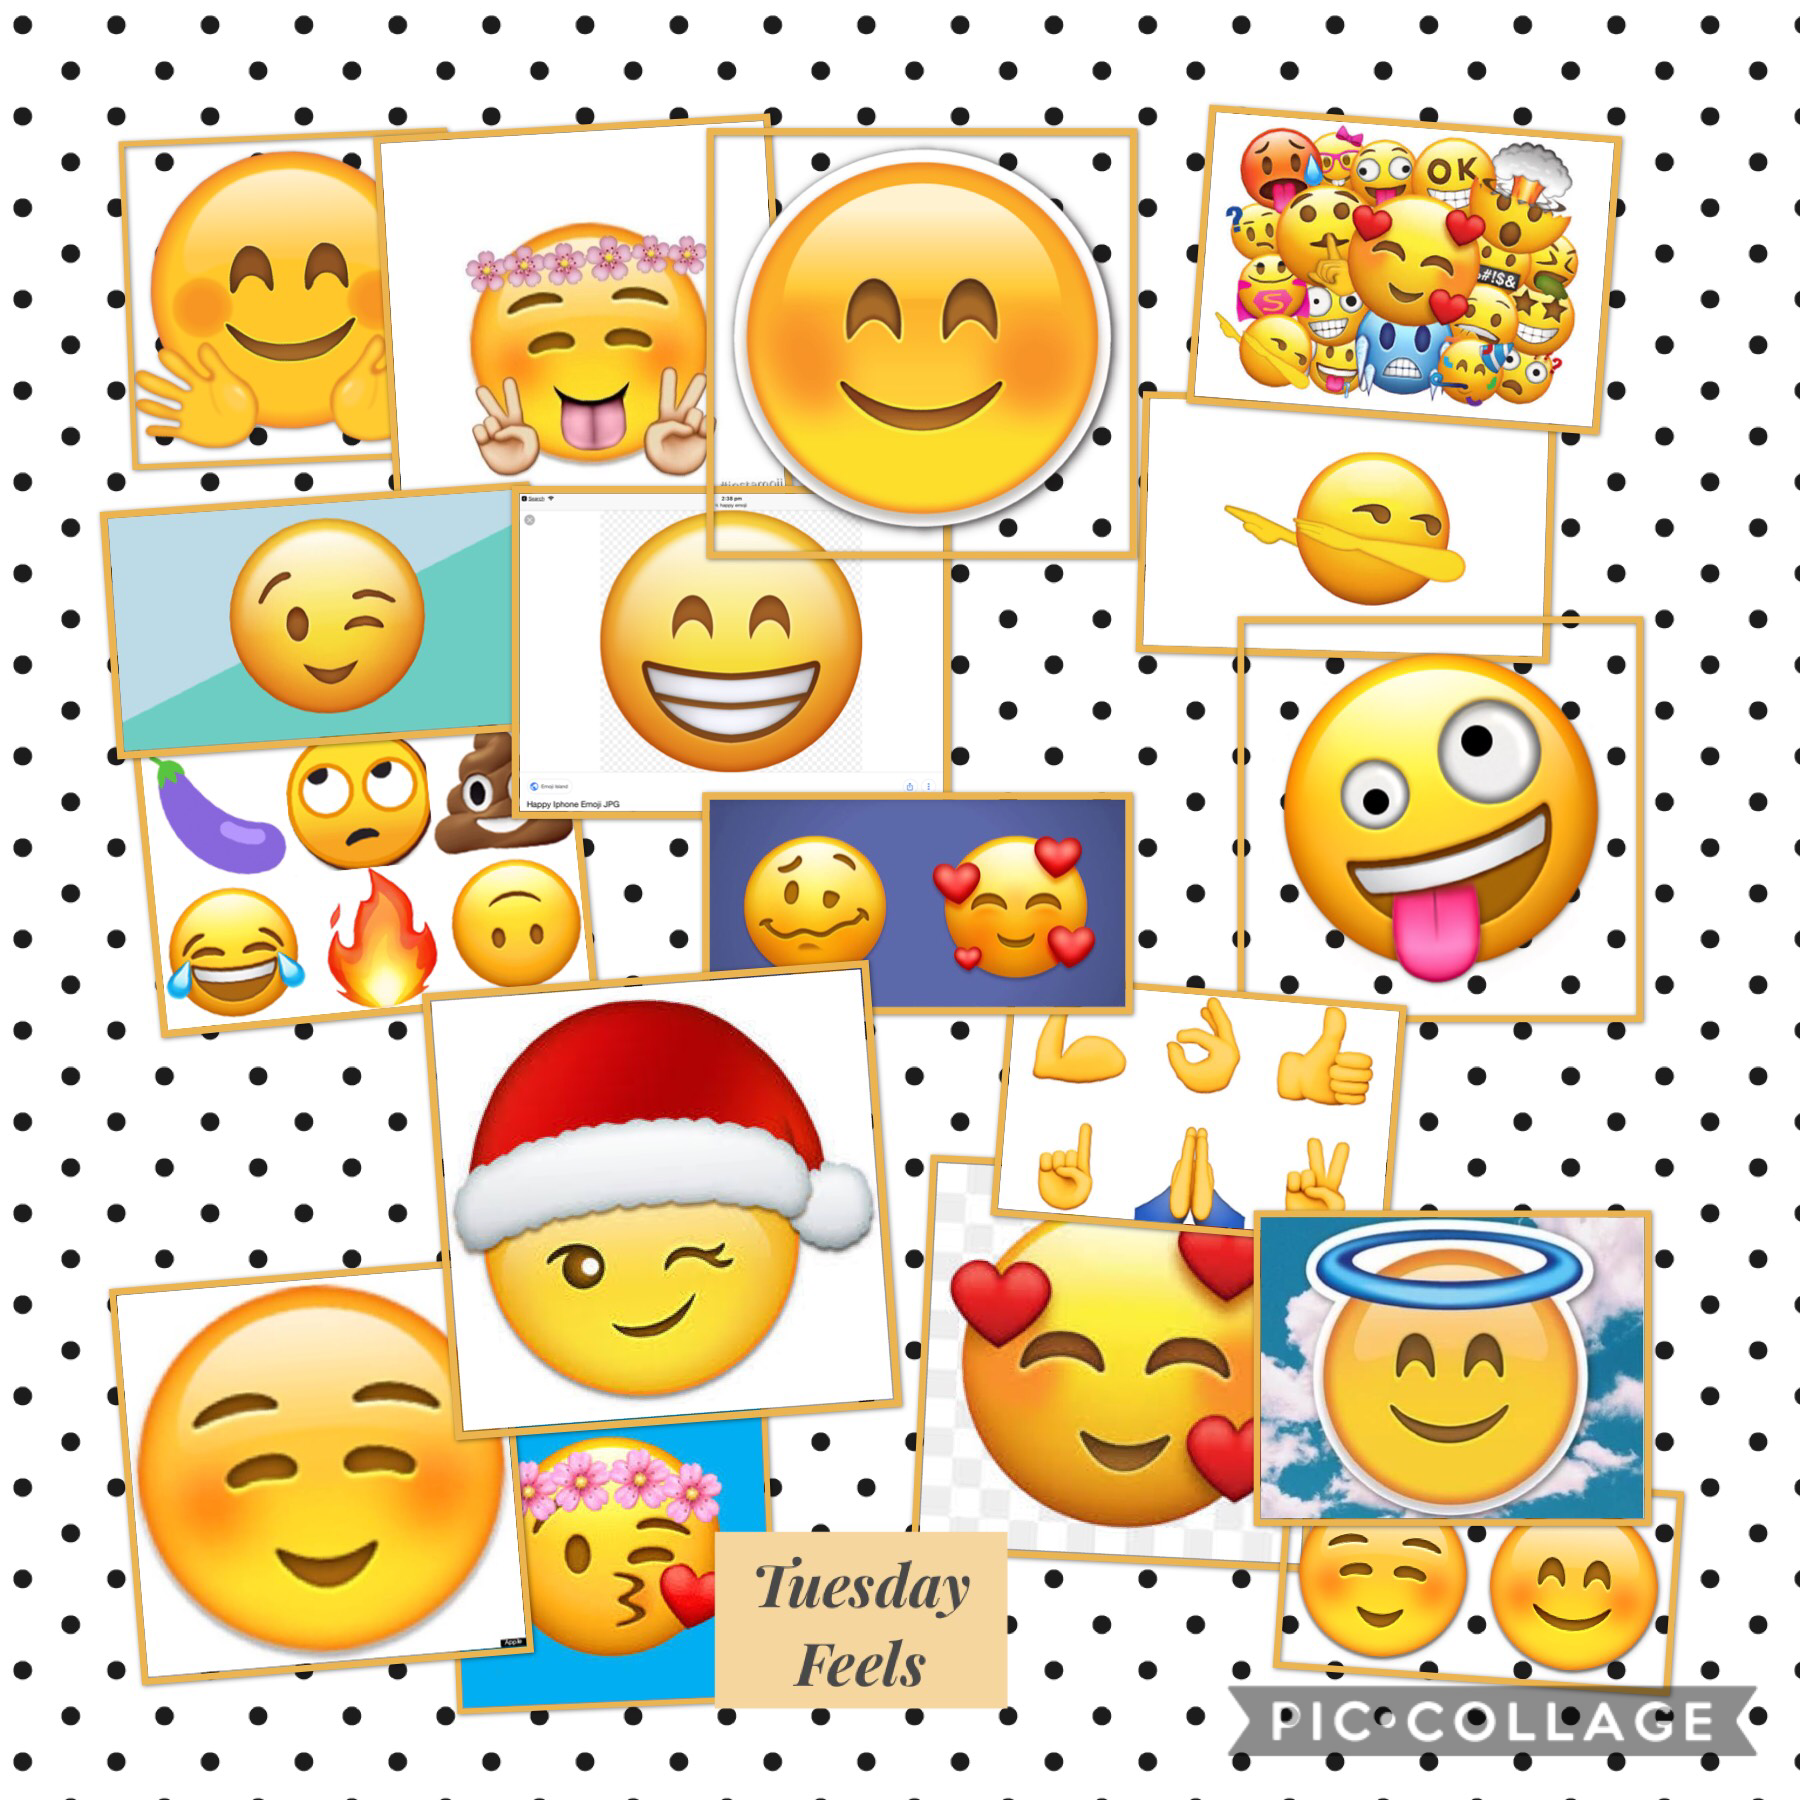 These are the emojis I feel everyday #EMOTIONS #INMYFEELINGS